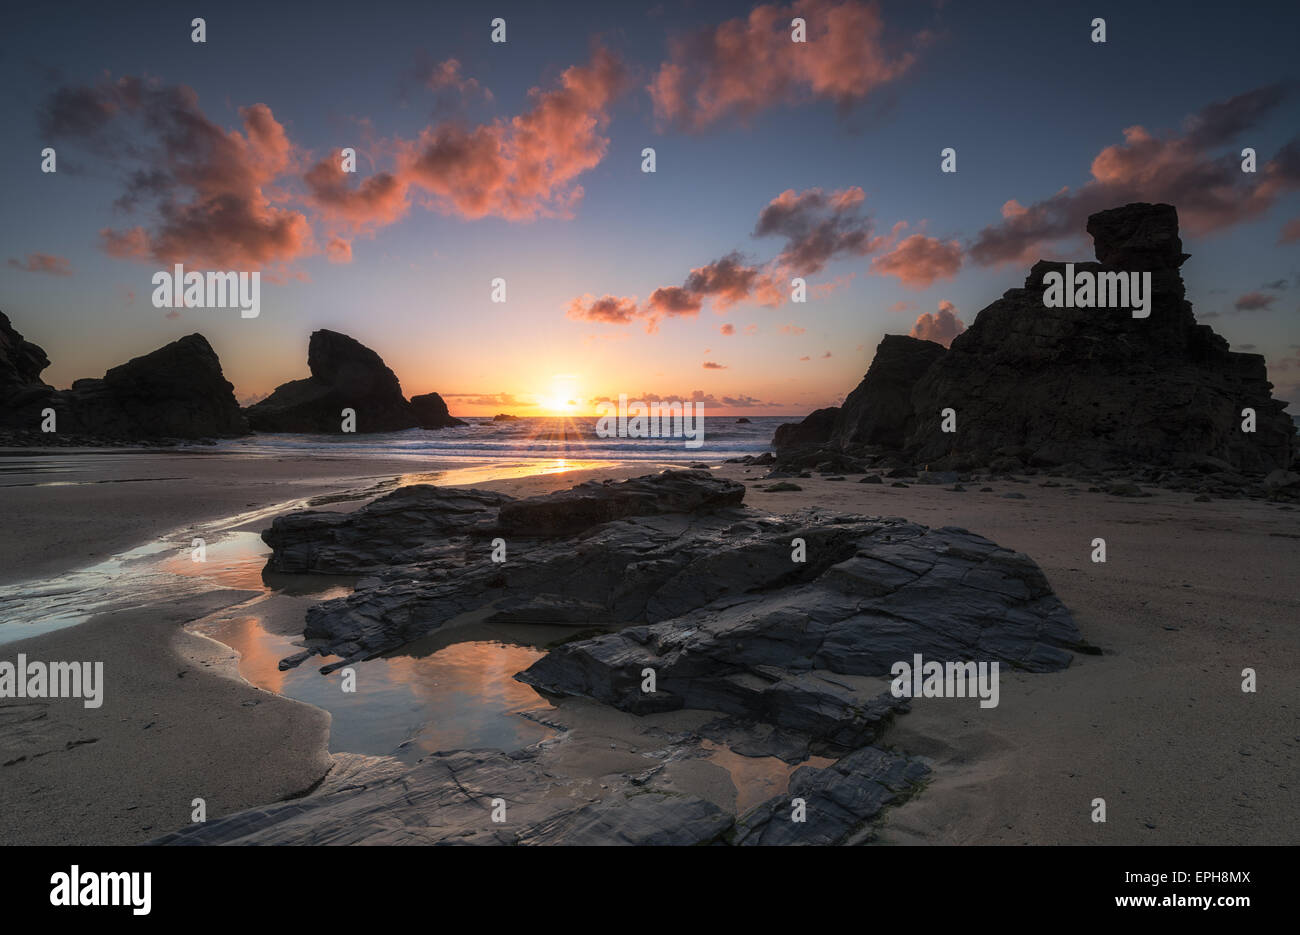 Dramatic sunset at over rock stacks at Porthcothan Bay near Padstow in Cornwall - Stock Image